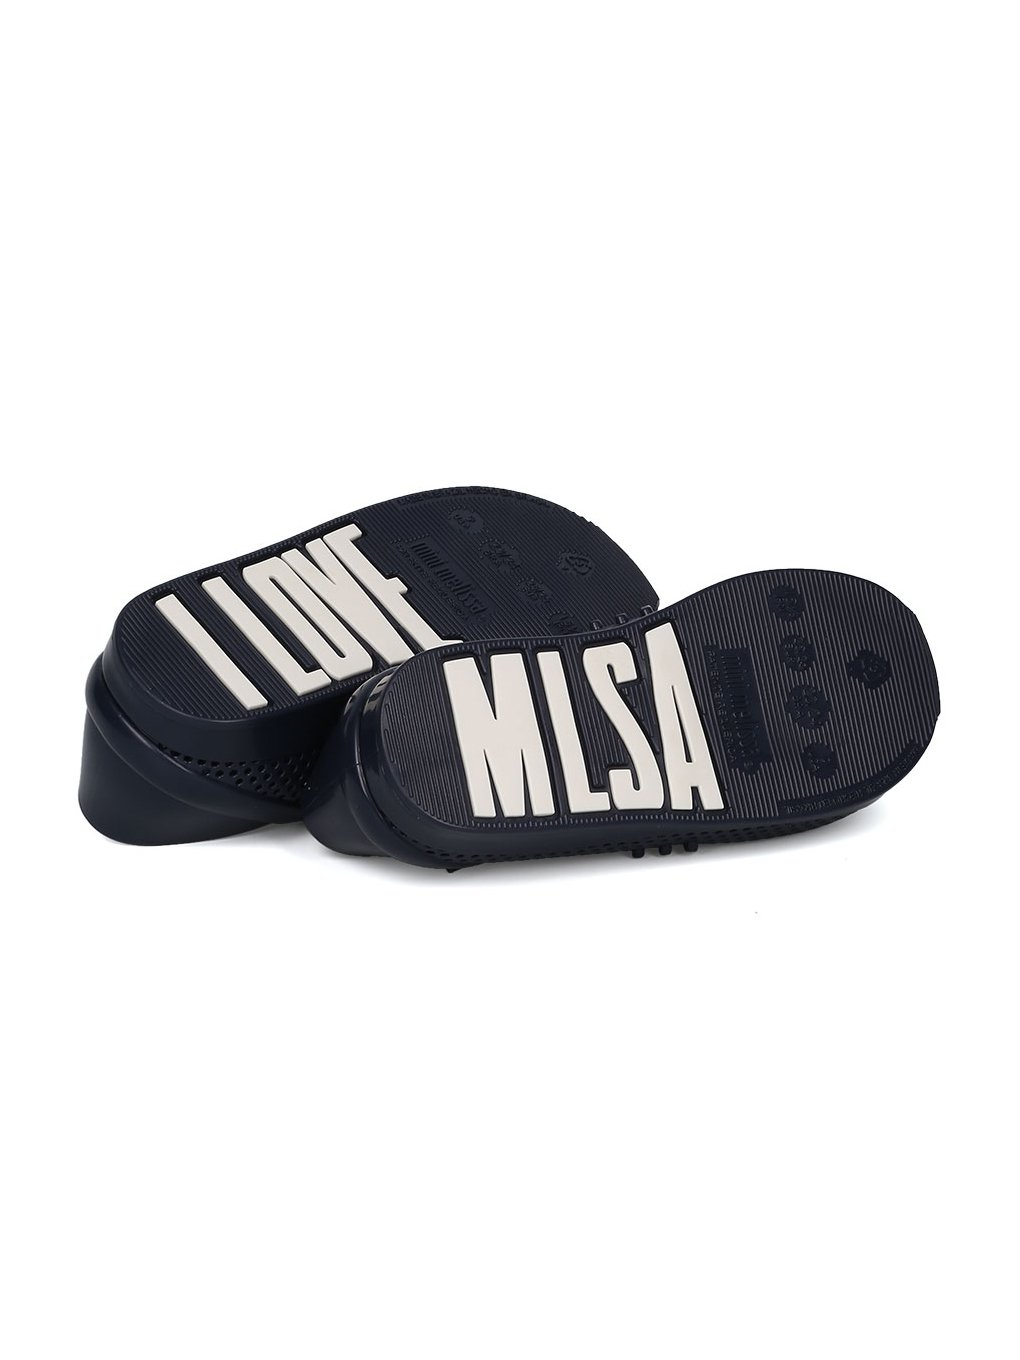 Melissa Mini Mini Love System PVC Perforated Lace up Sneaker HC08 - Navy Blue Mix (Size: Toddler 8) by Melissa (Image #4)